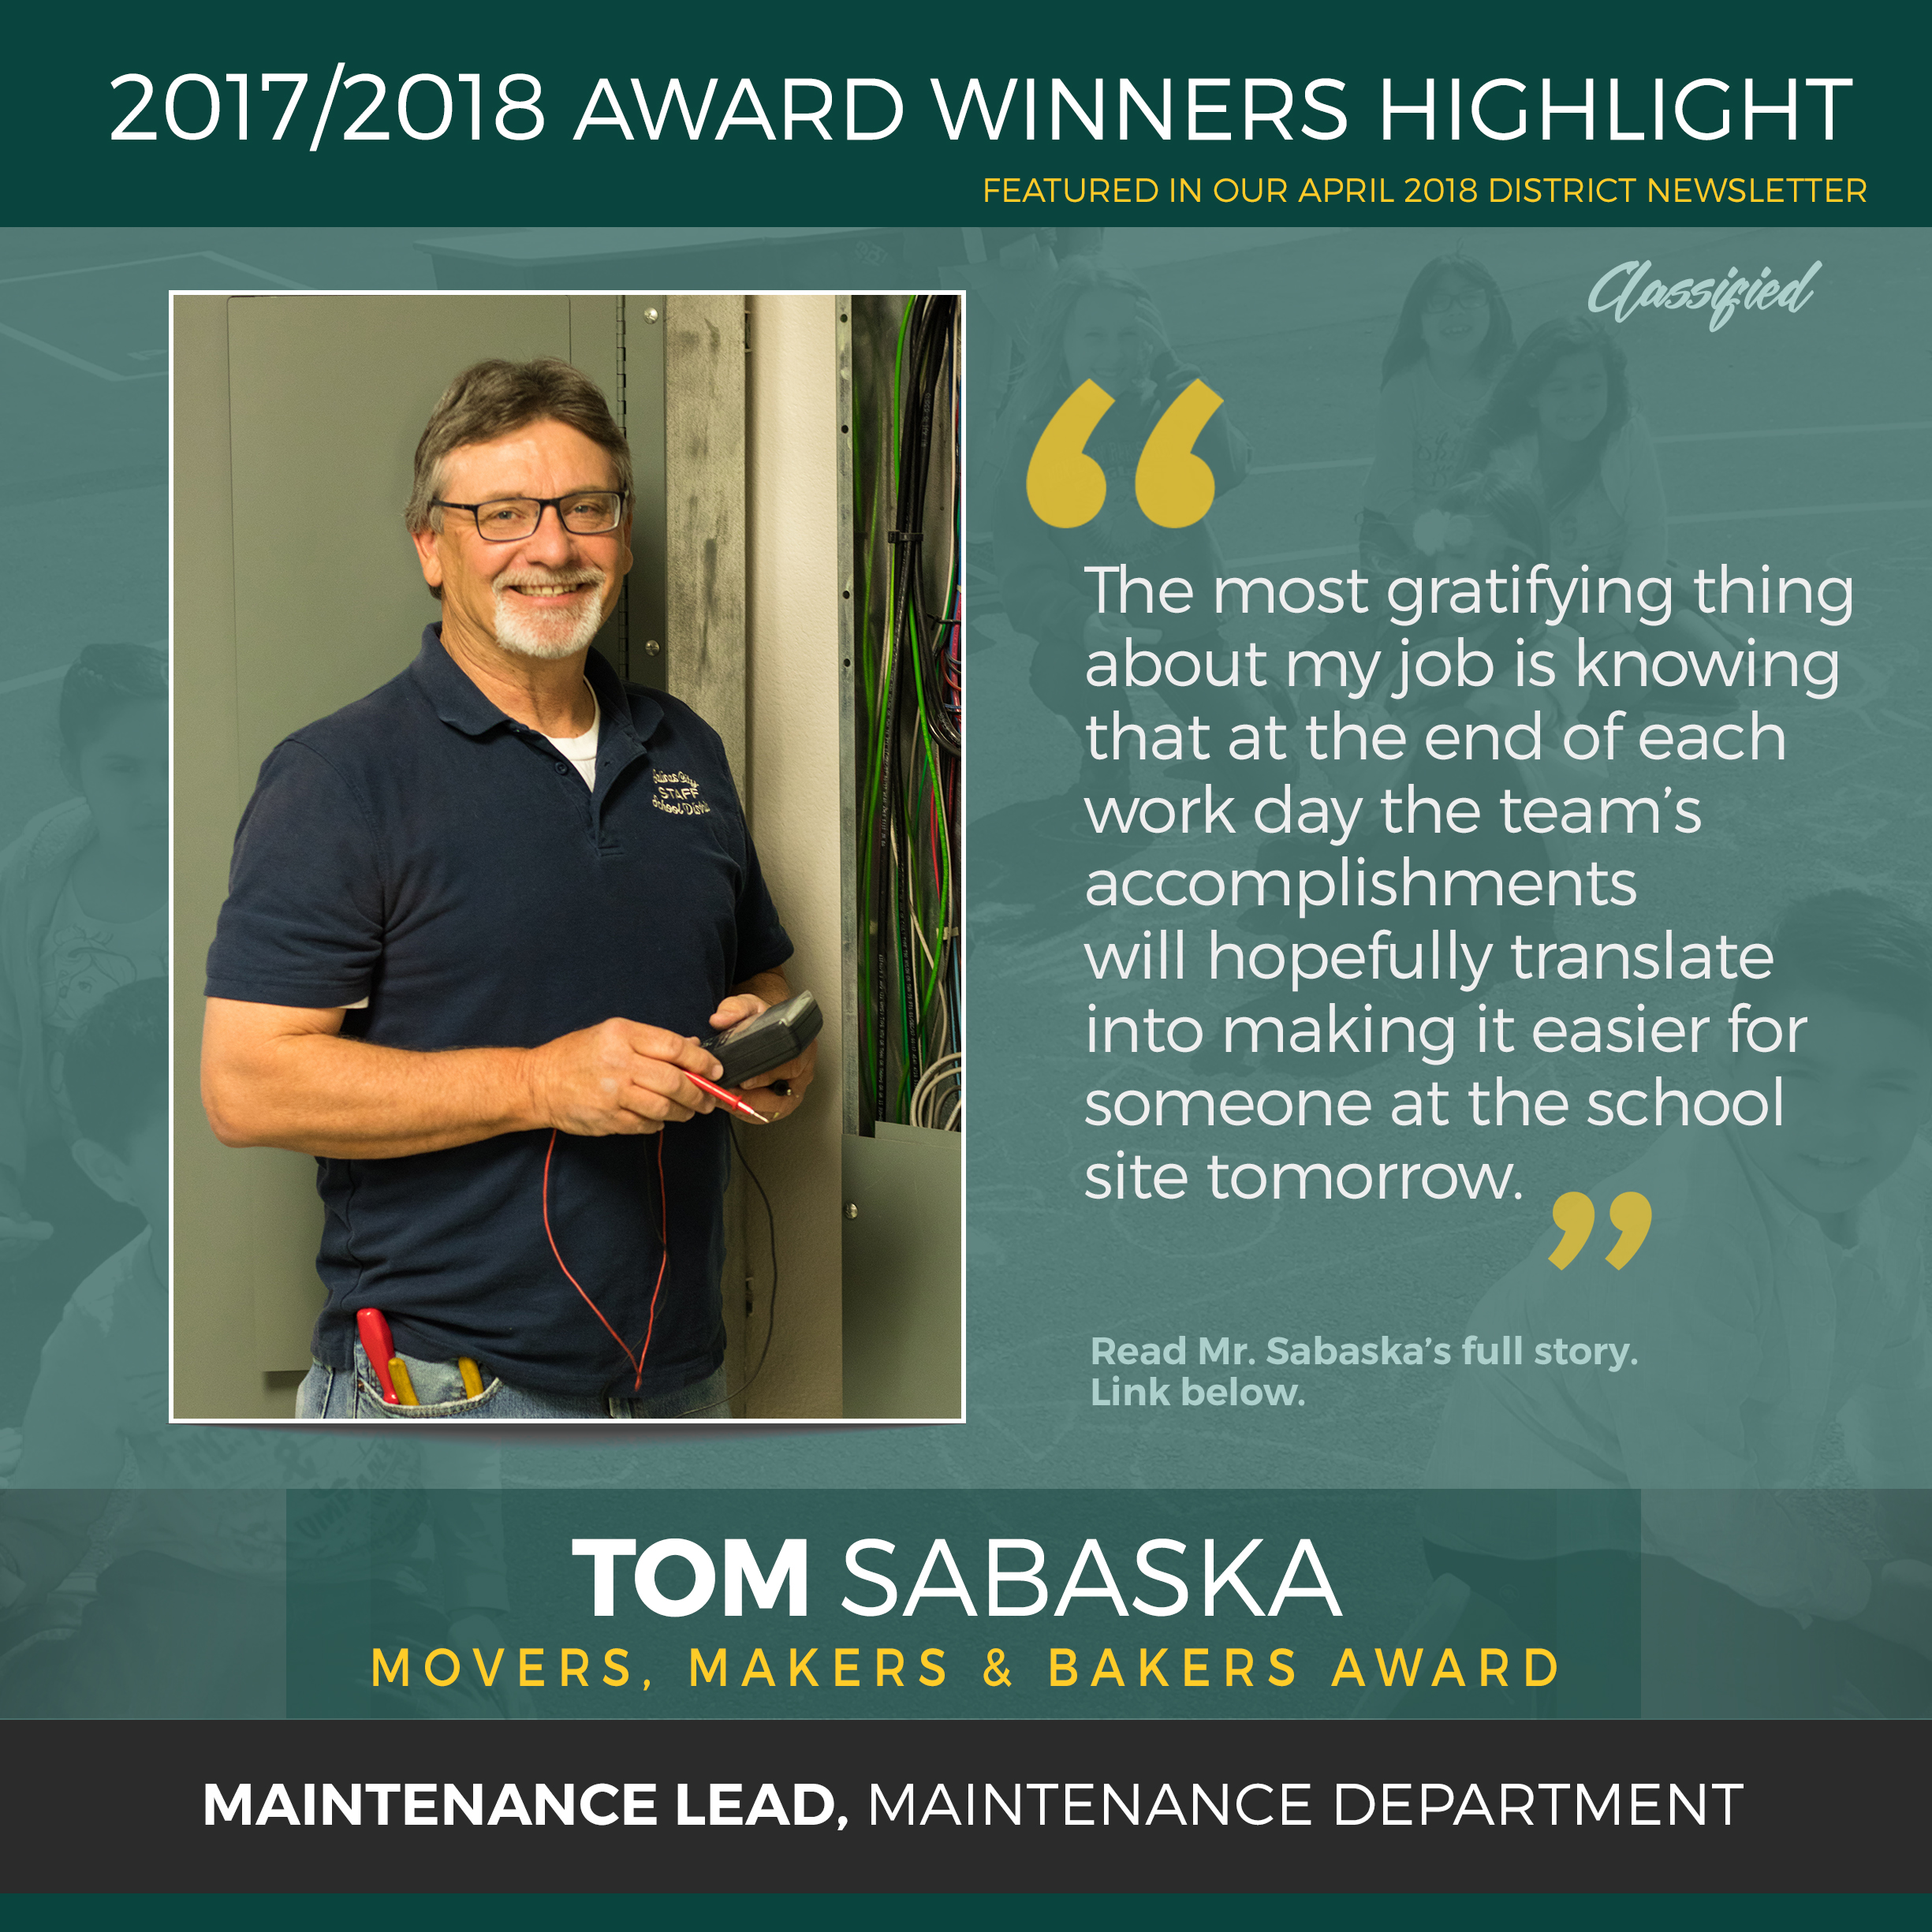 Tom_Award Winner Hightlight_Social Ad Template.jpg